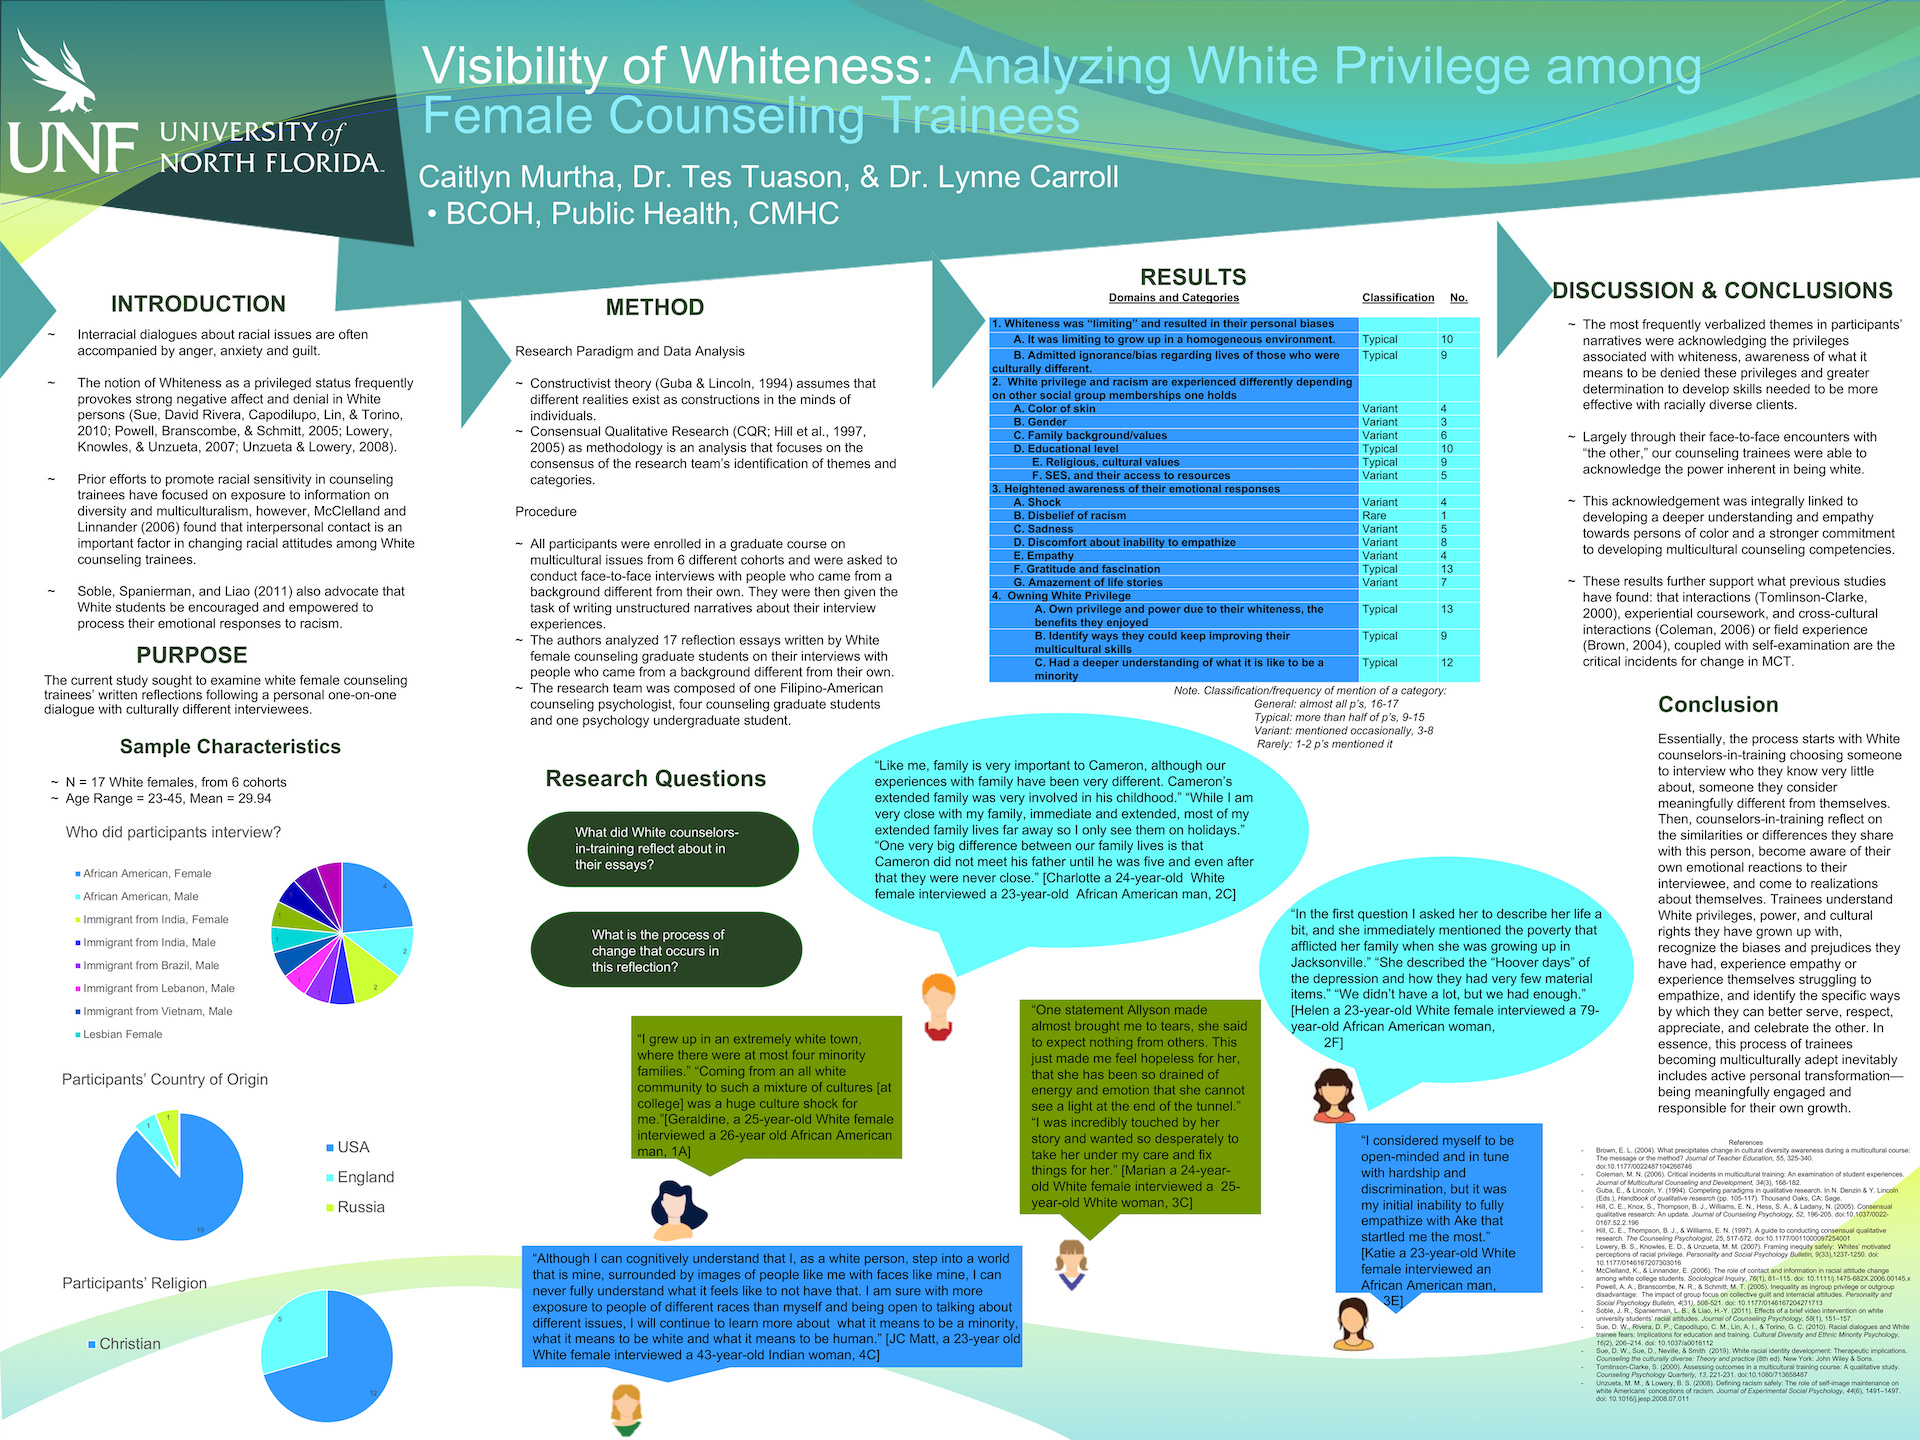 Visibility of Whiteness: Analyzing White Privilege among Female Counseling Trainees Project of Merit poster